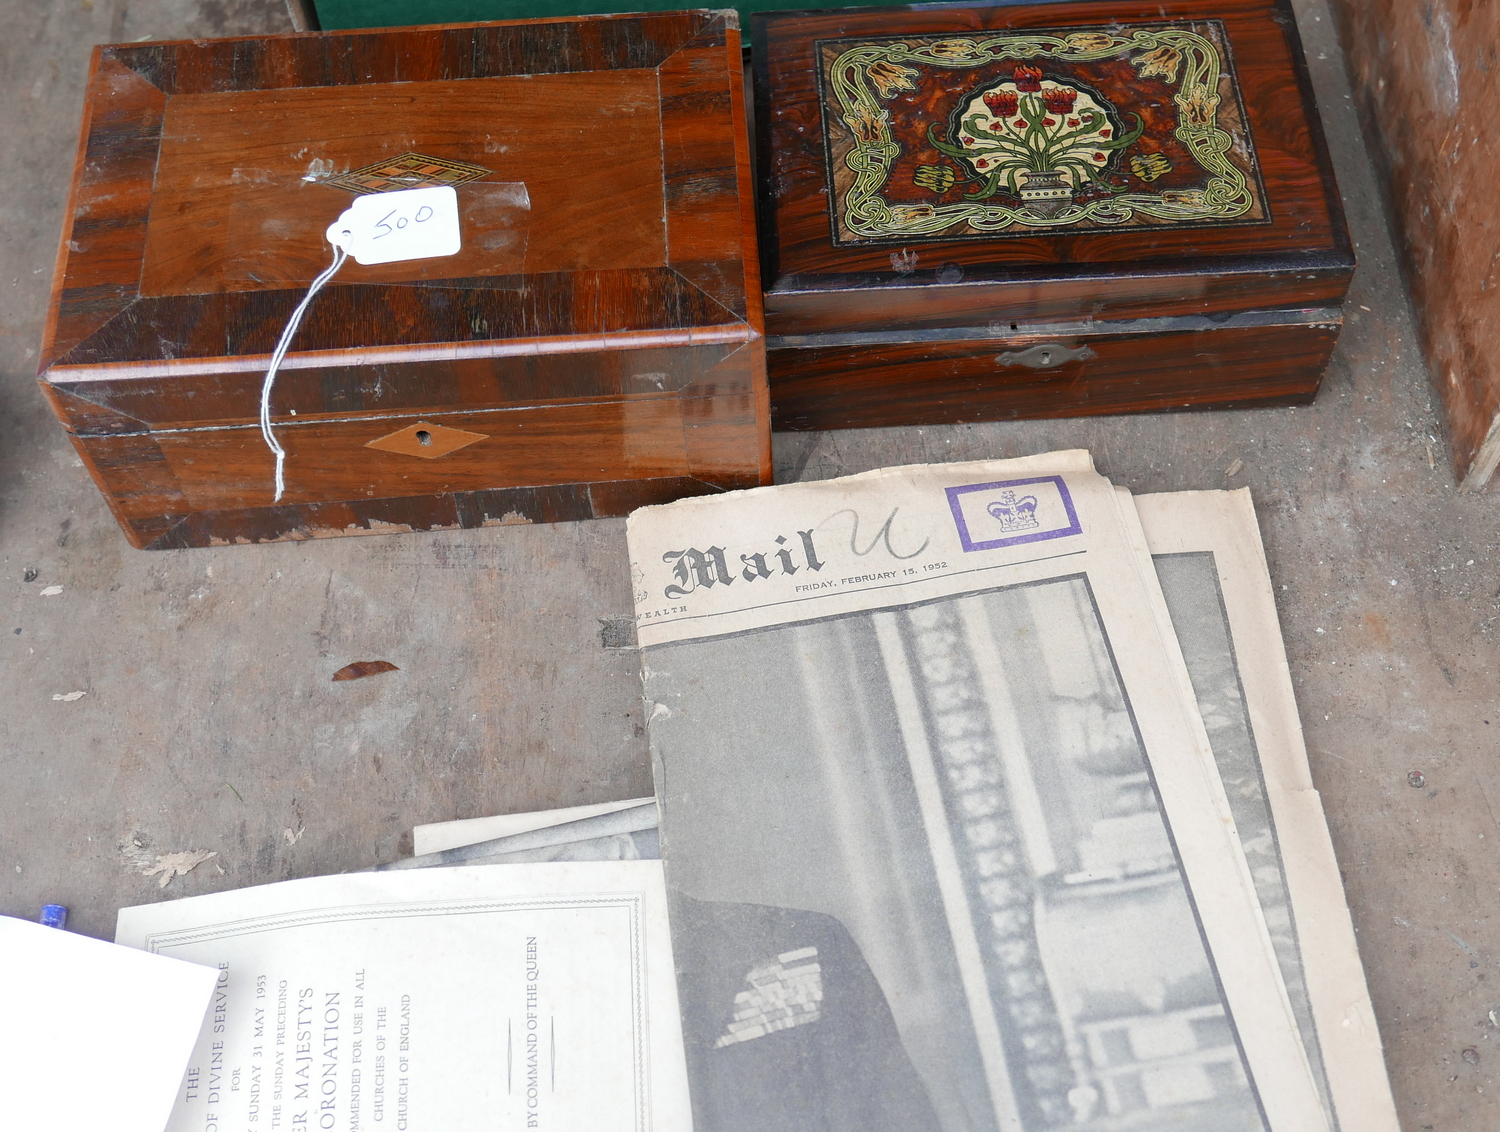 Lot 50O - Lot of 2 Vintage Boxes and Commemorative Newspapers.